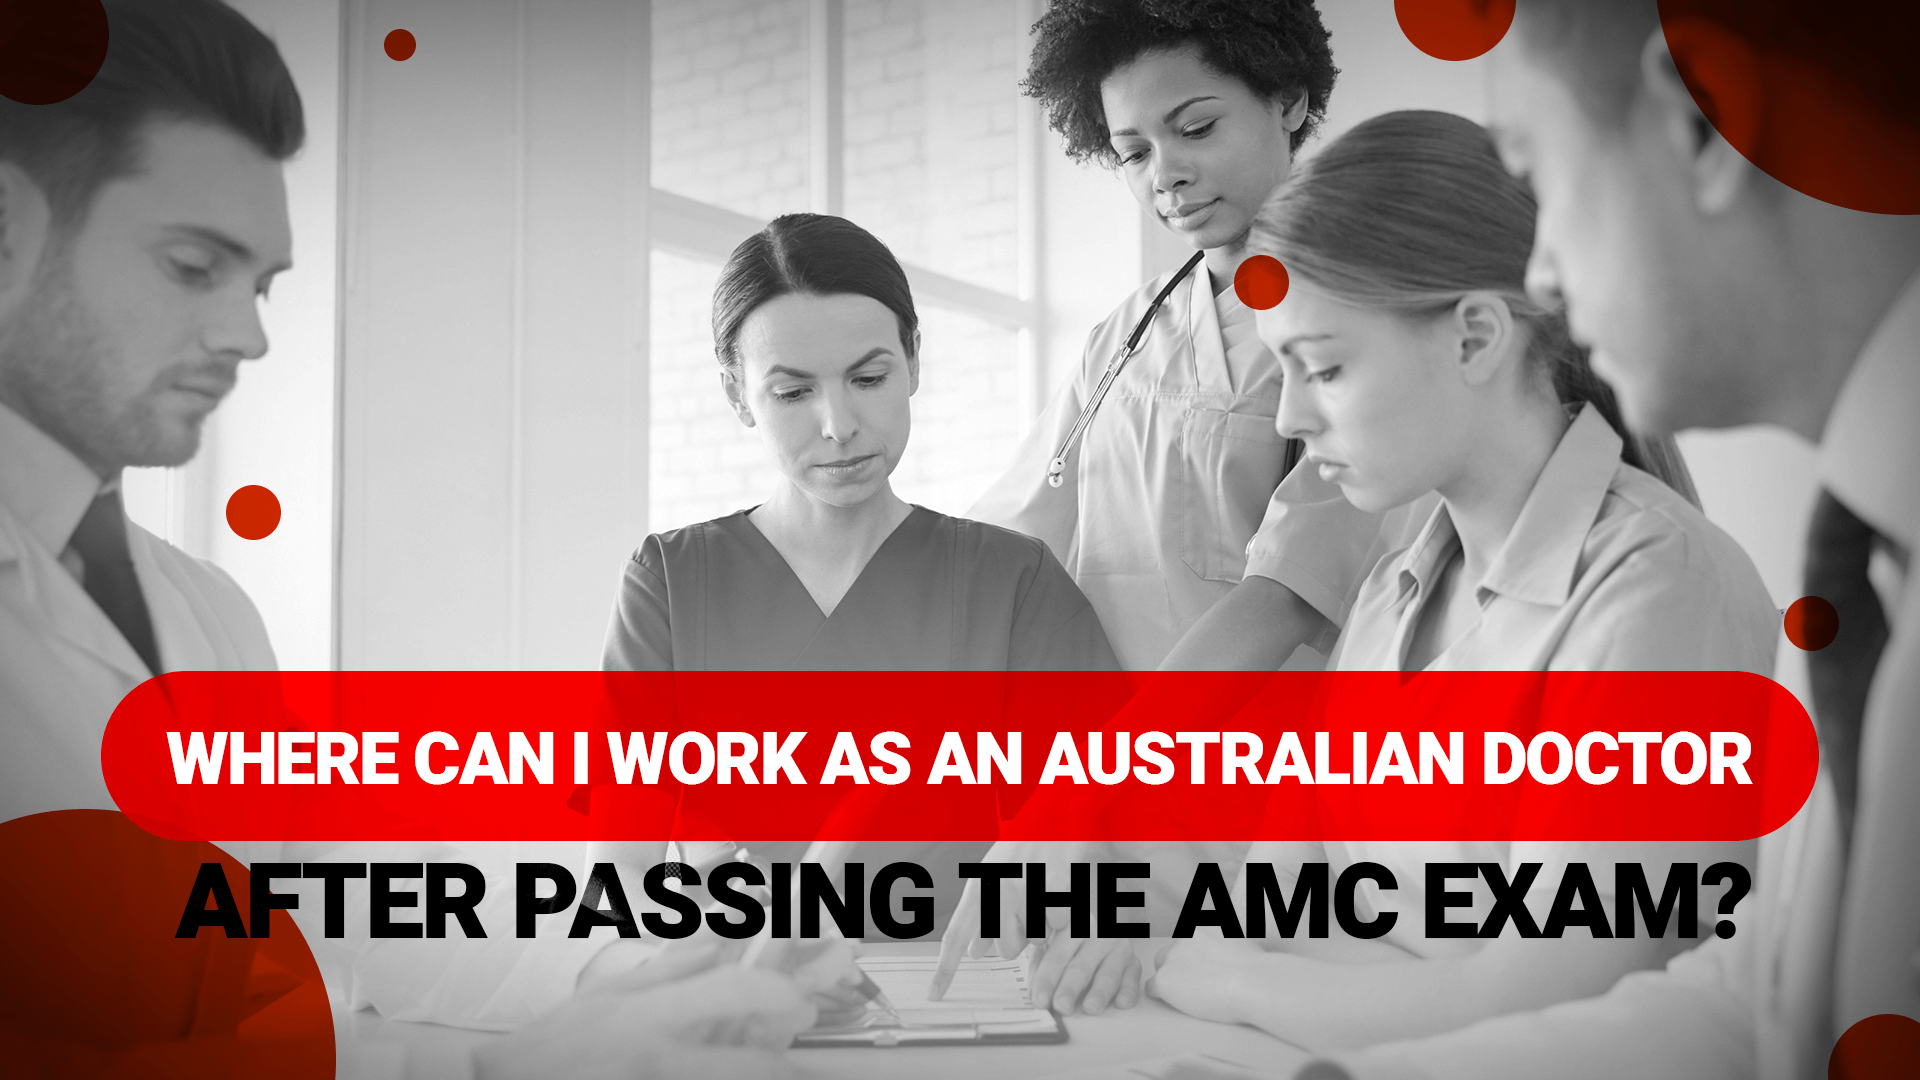 Where can I work as an Australian Doctor after passing the AMC exam?